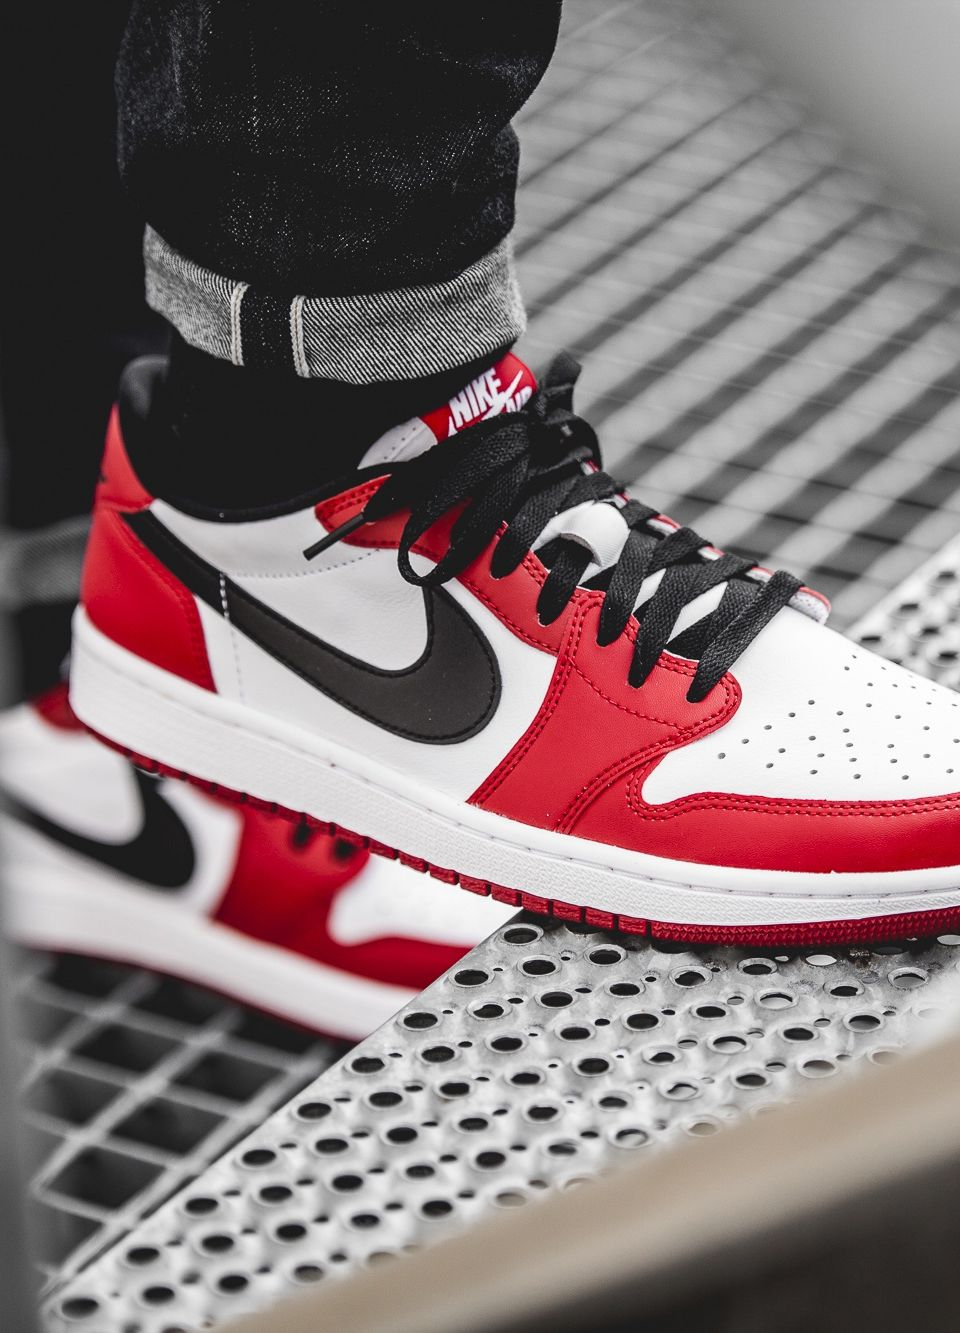 2e4a6d2cc89 Nike Air Jordan 1 Retro Low OG Chicago #sneakernews #Sneakers #StreetStyle  #Kicks